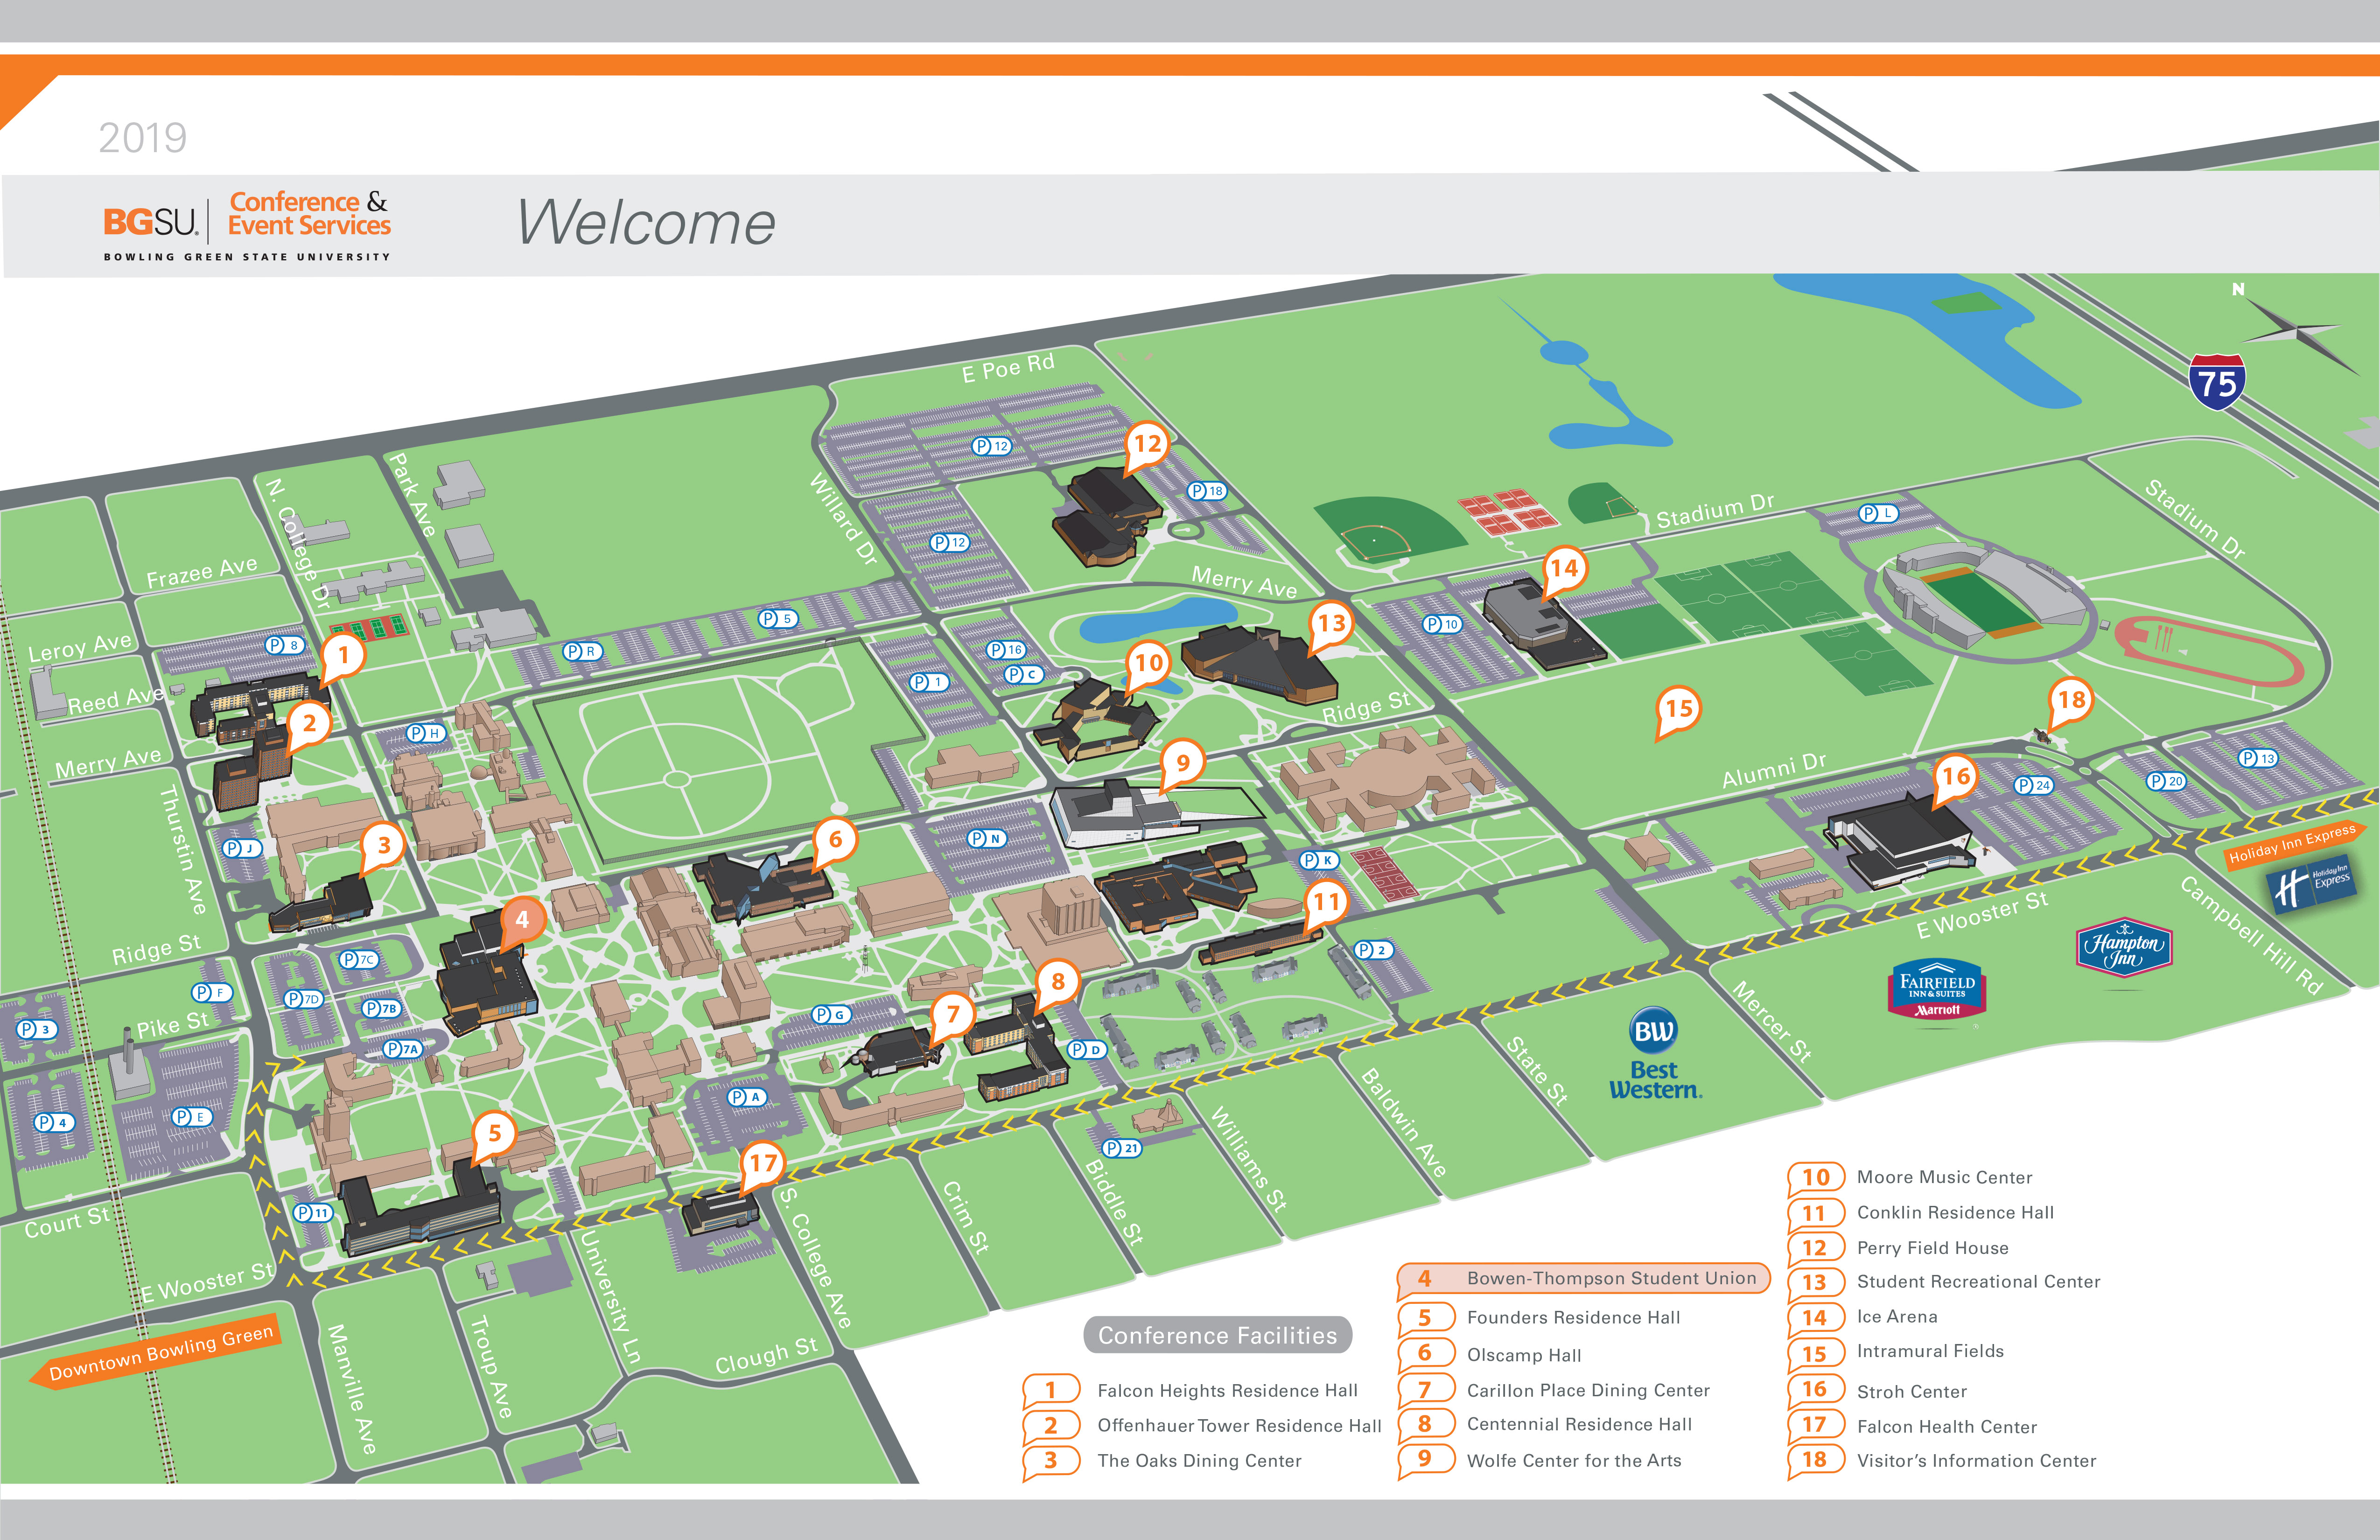 A map of Bowling Green State University. The Bowen-Thompson Student Union is highlighted.